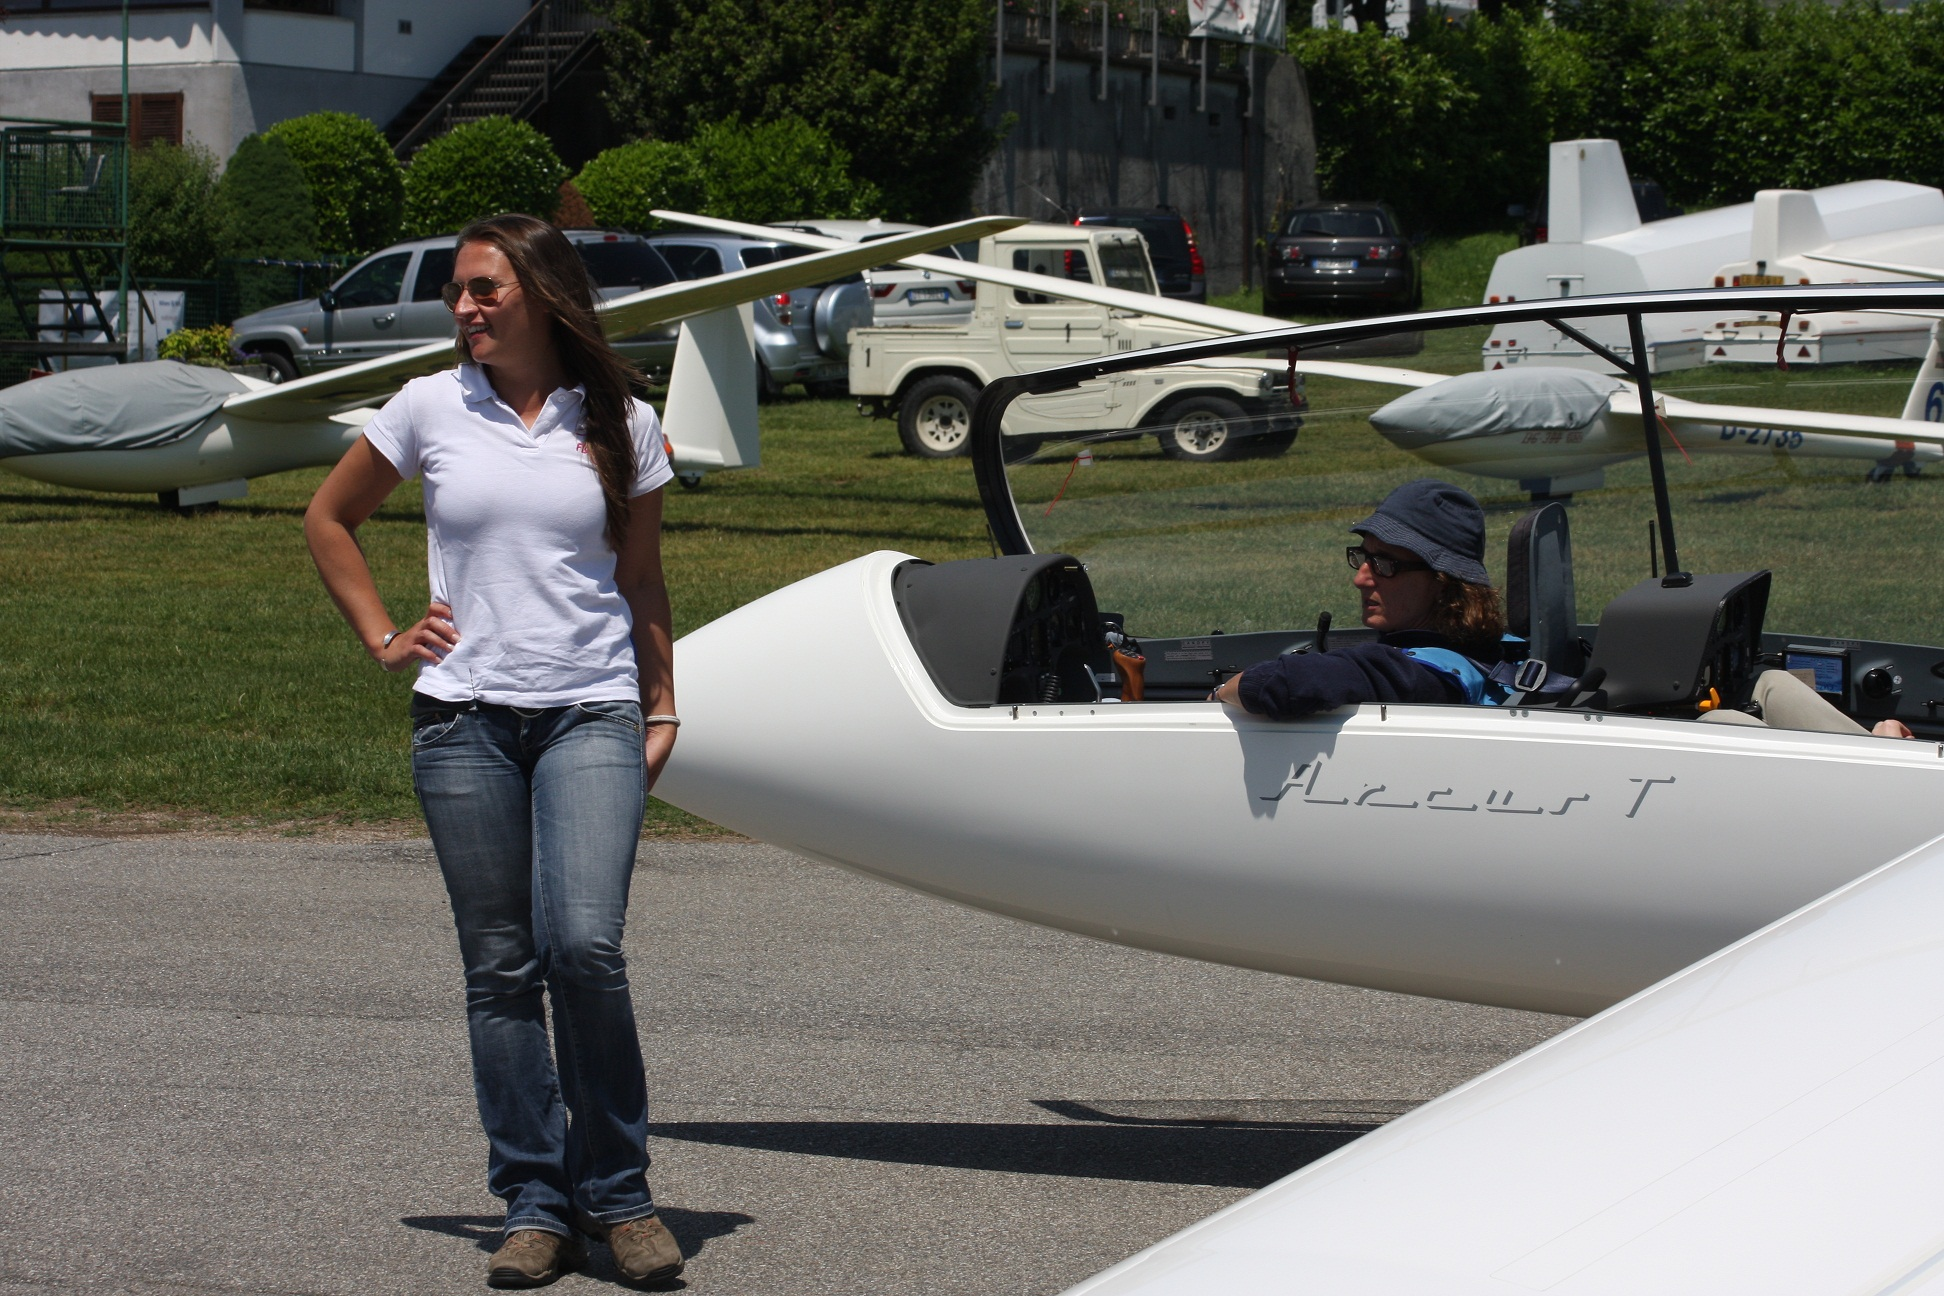 Francesca, assistente ala di Margot